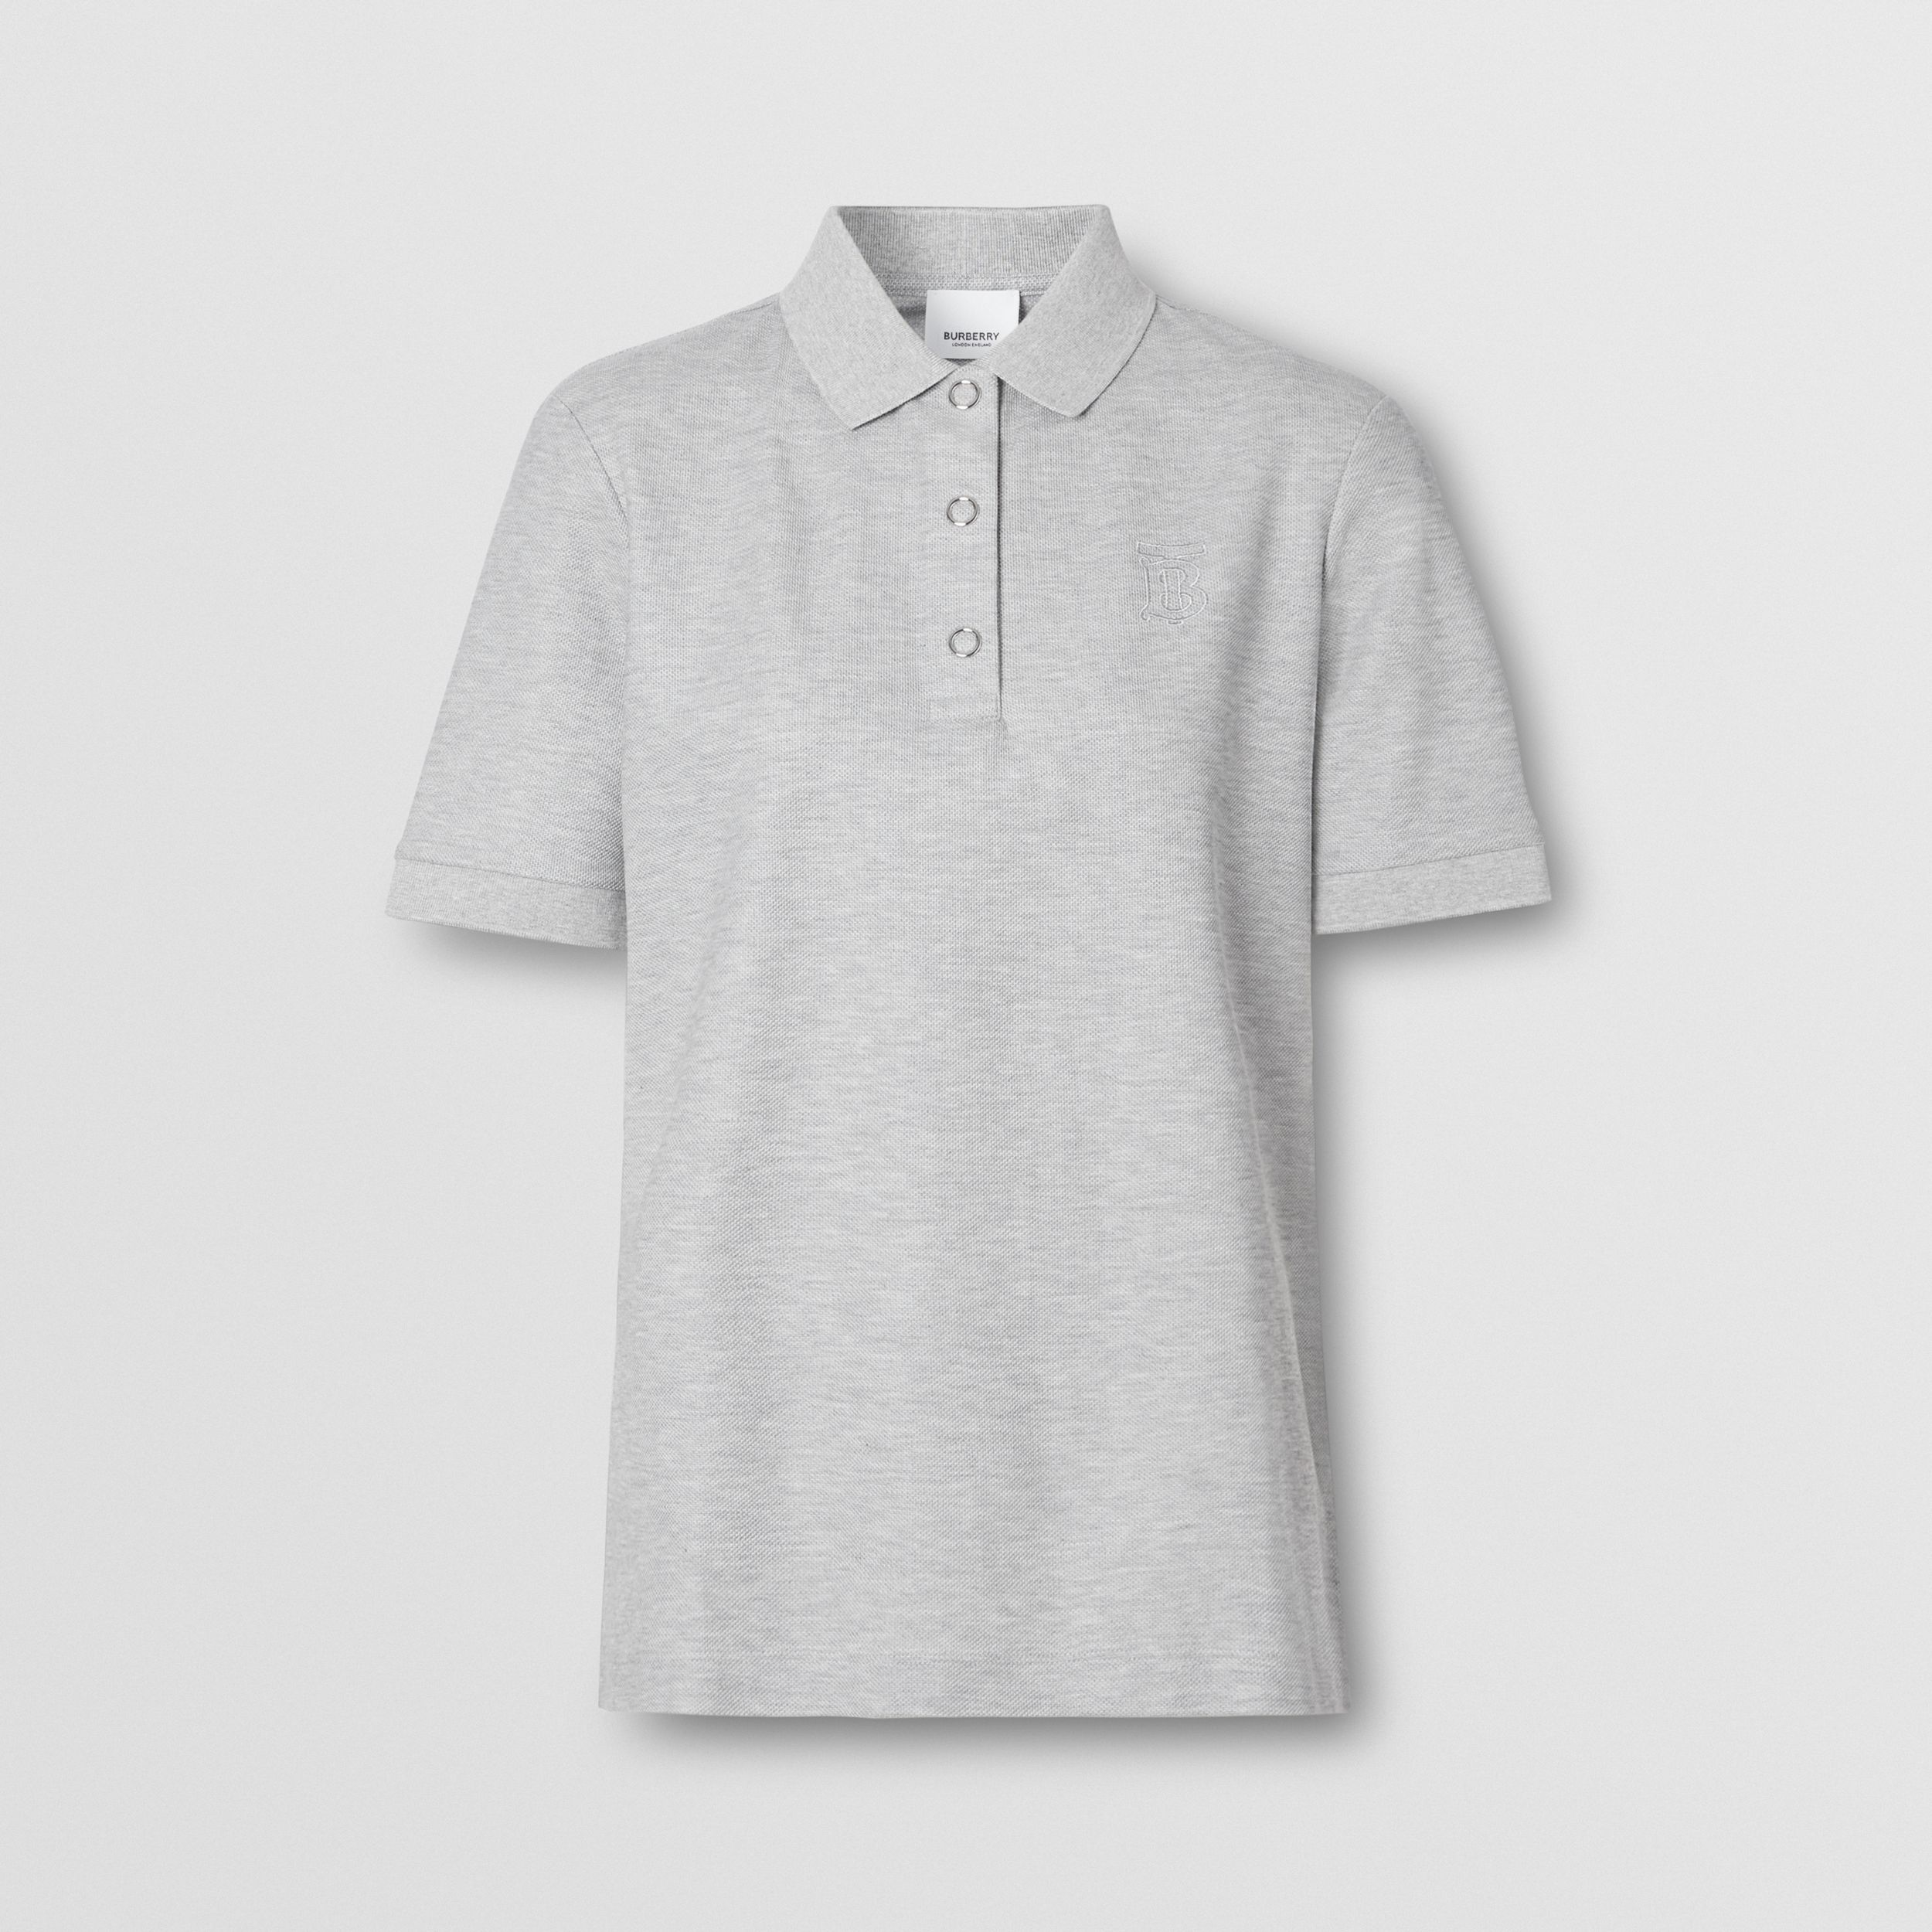 Monogram Motif Cotton Piqué Polo Shirt in Pale Grey Melange - Women | Burberry - 4